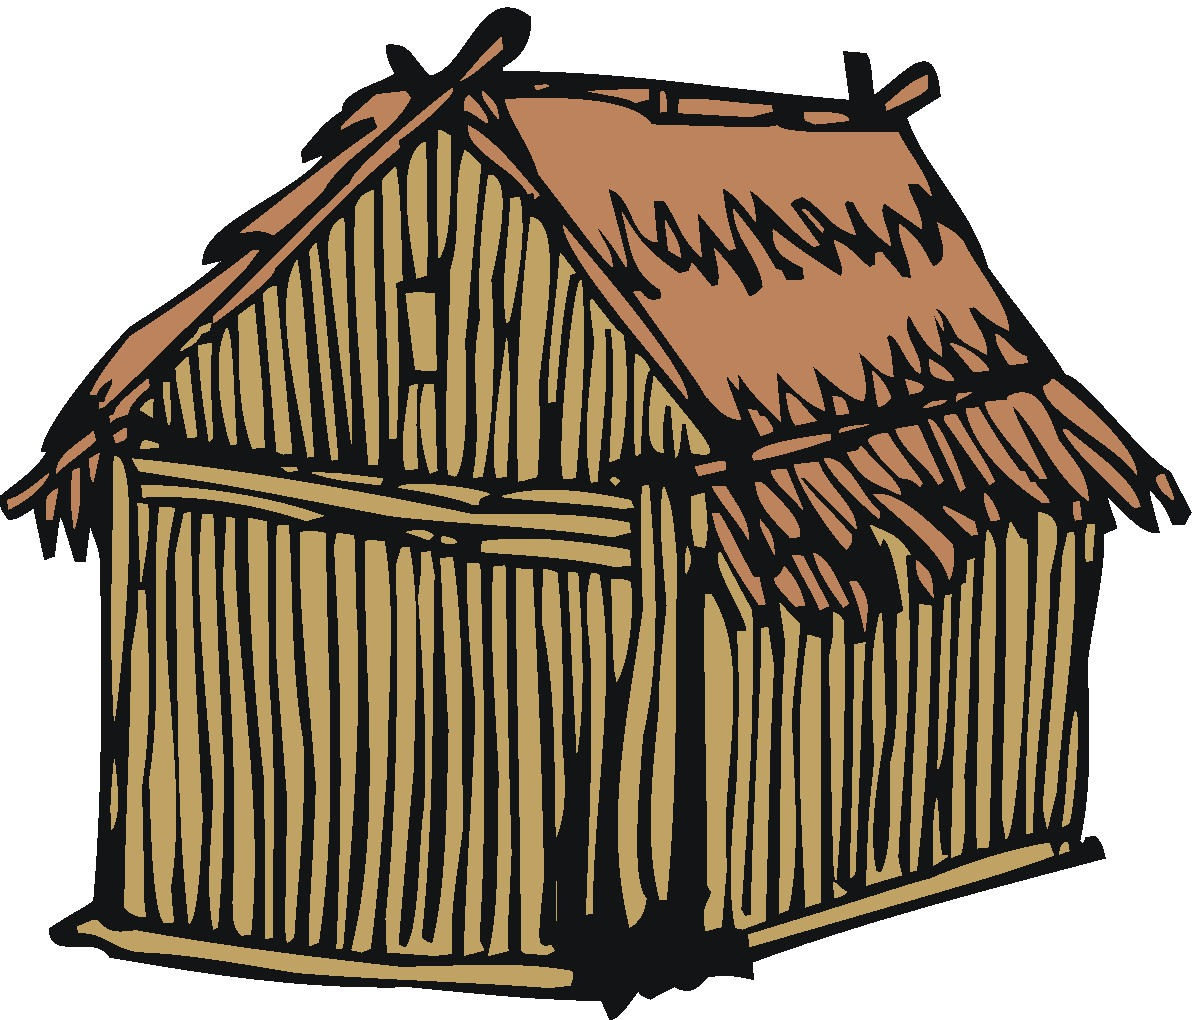 Cottage clipart peasant house. Free cliparts download clip